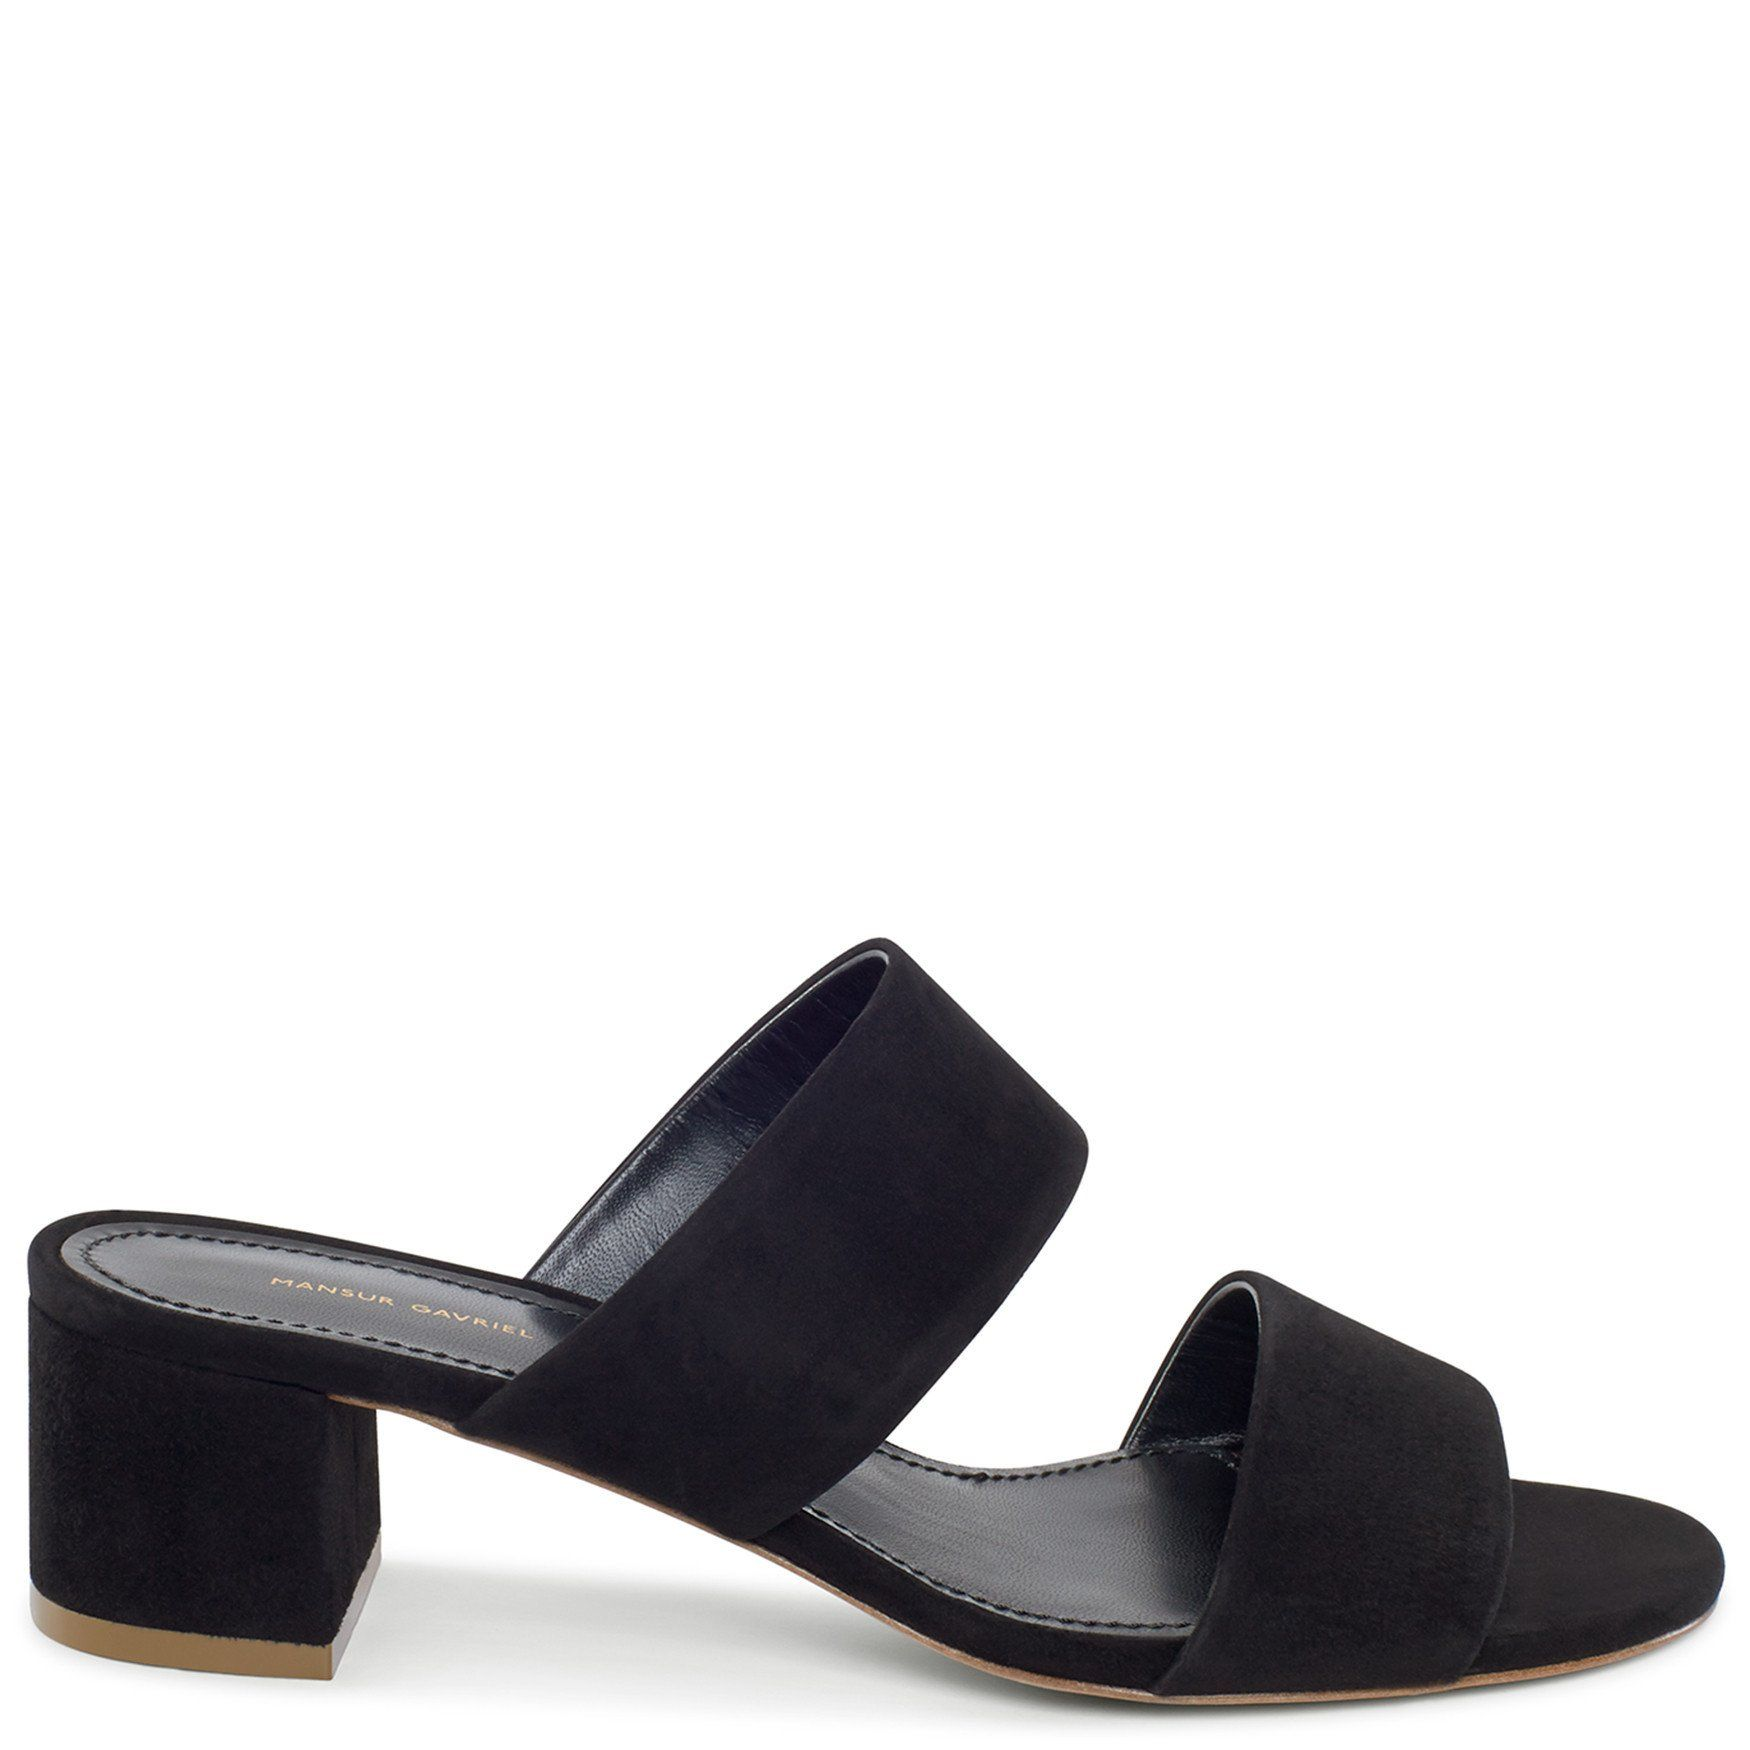 5124b3eac88 Italian suede leather black double strap sandal with calf leather insole.  40mm heel. Made in Italy.